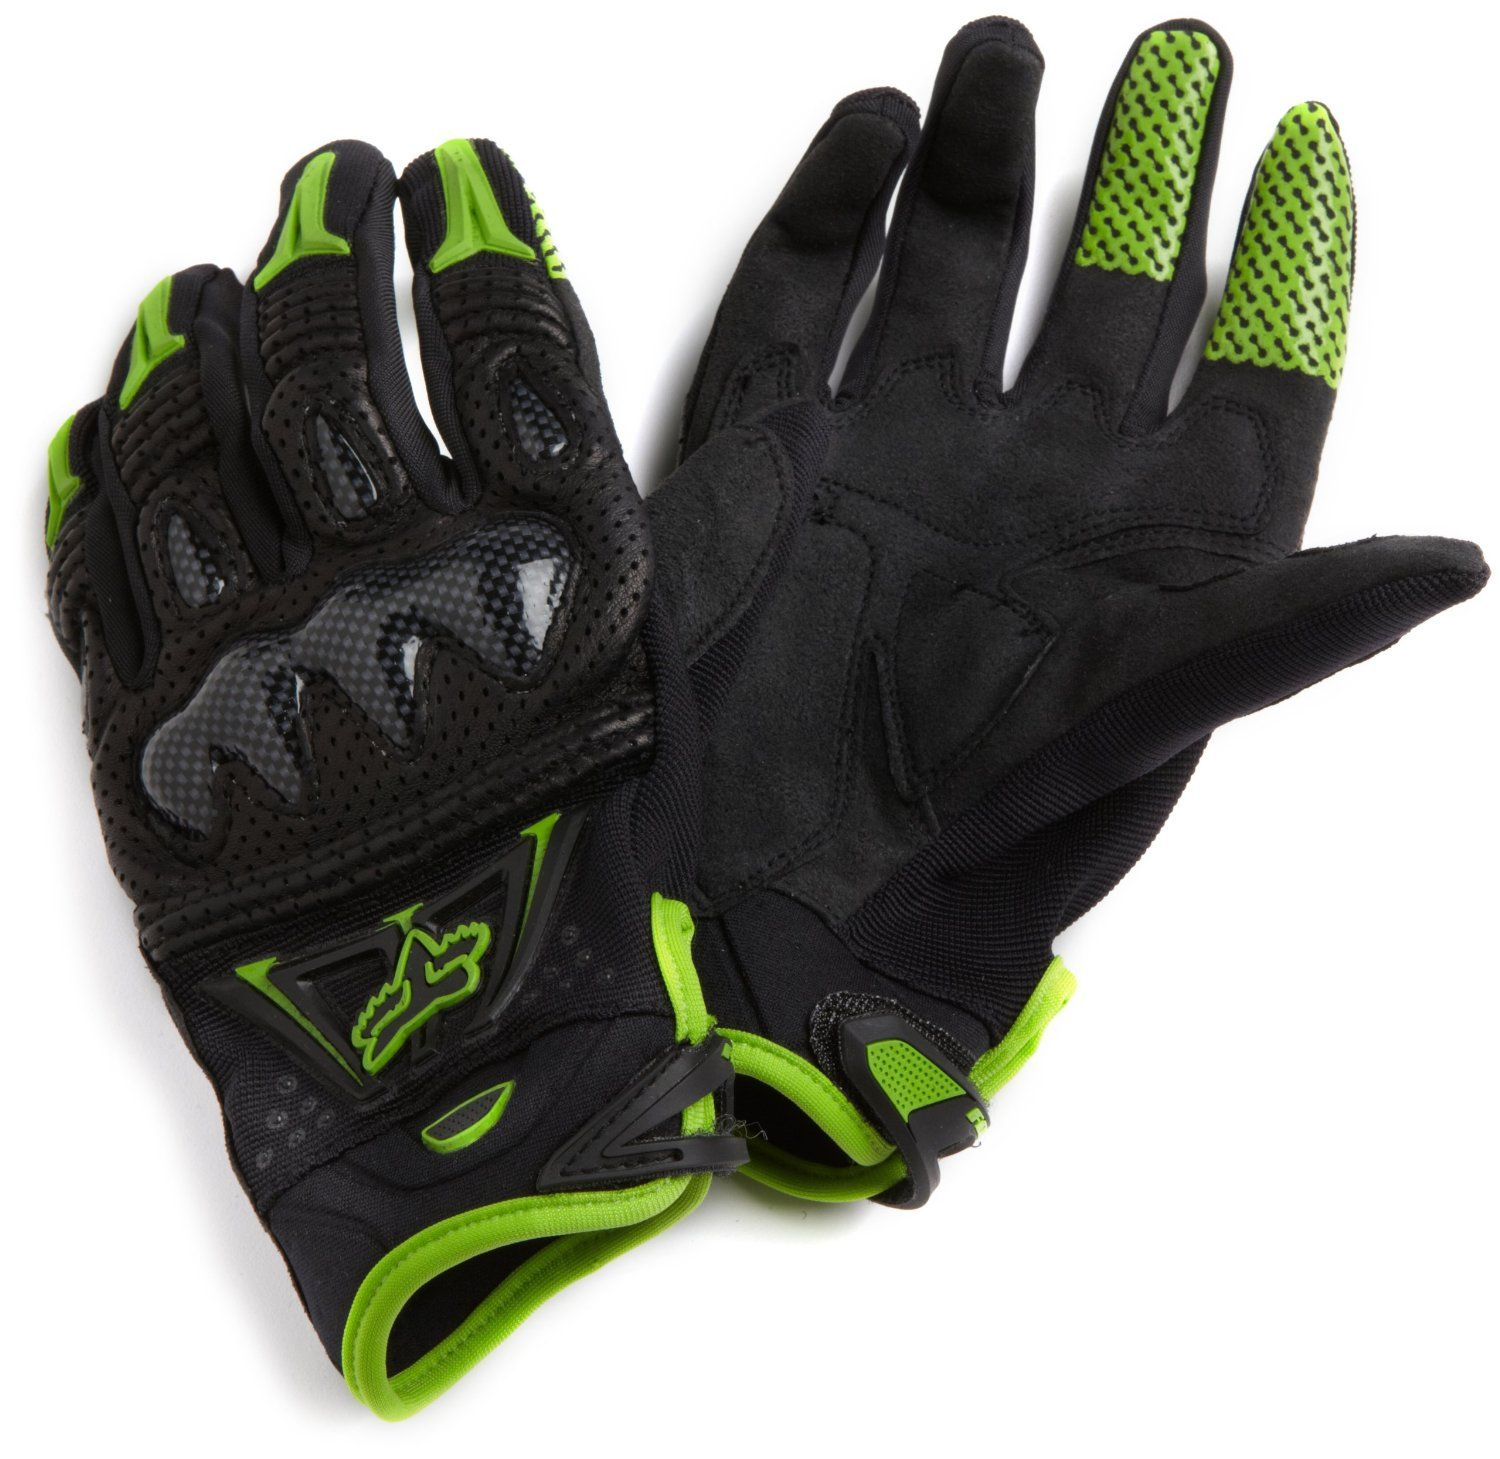 Pin By Jeremy Jarvis On Motocross Mountain Bike Gloves Bike Gloves Best Mountain Bikes